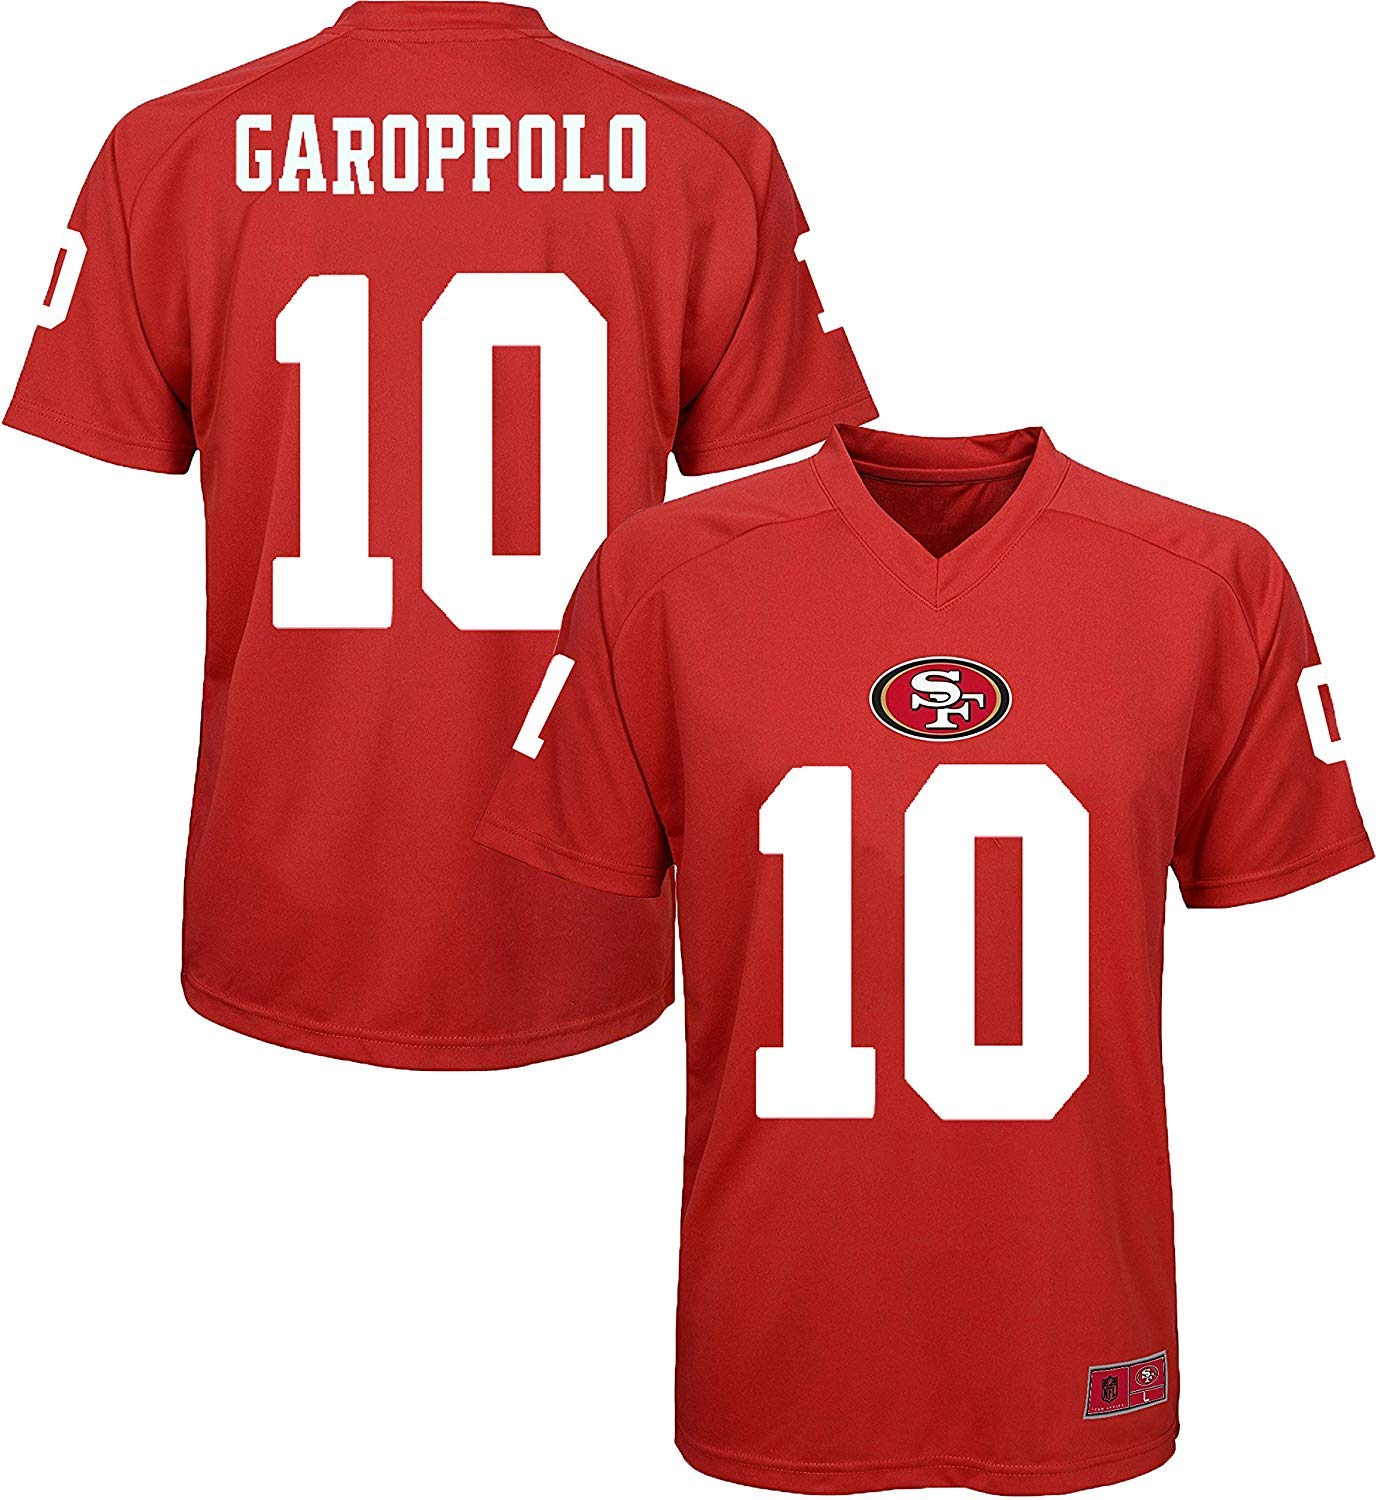 buy online 8a321 d7540 Amazon.com : Outerstuff Jimmy Garoppolo San Francisco 49ers ...